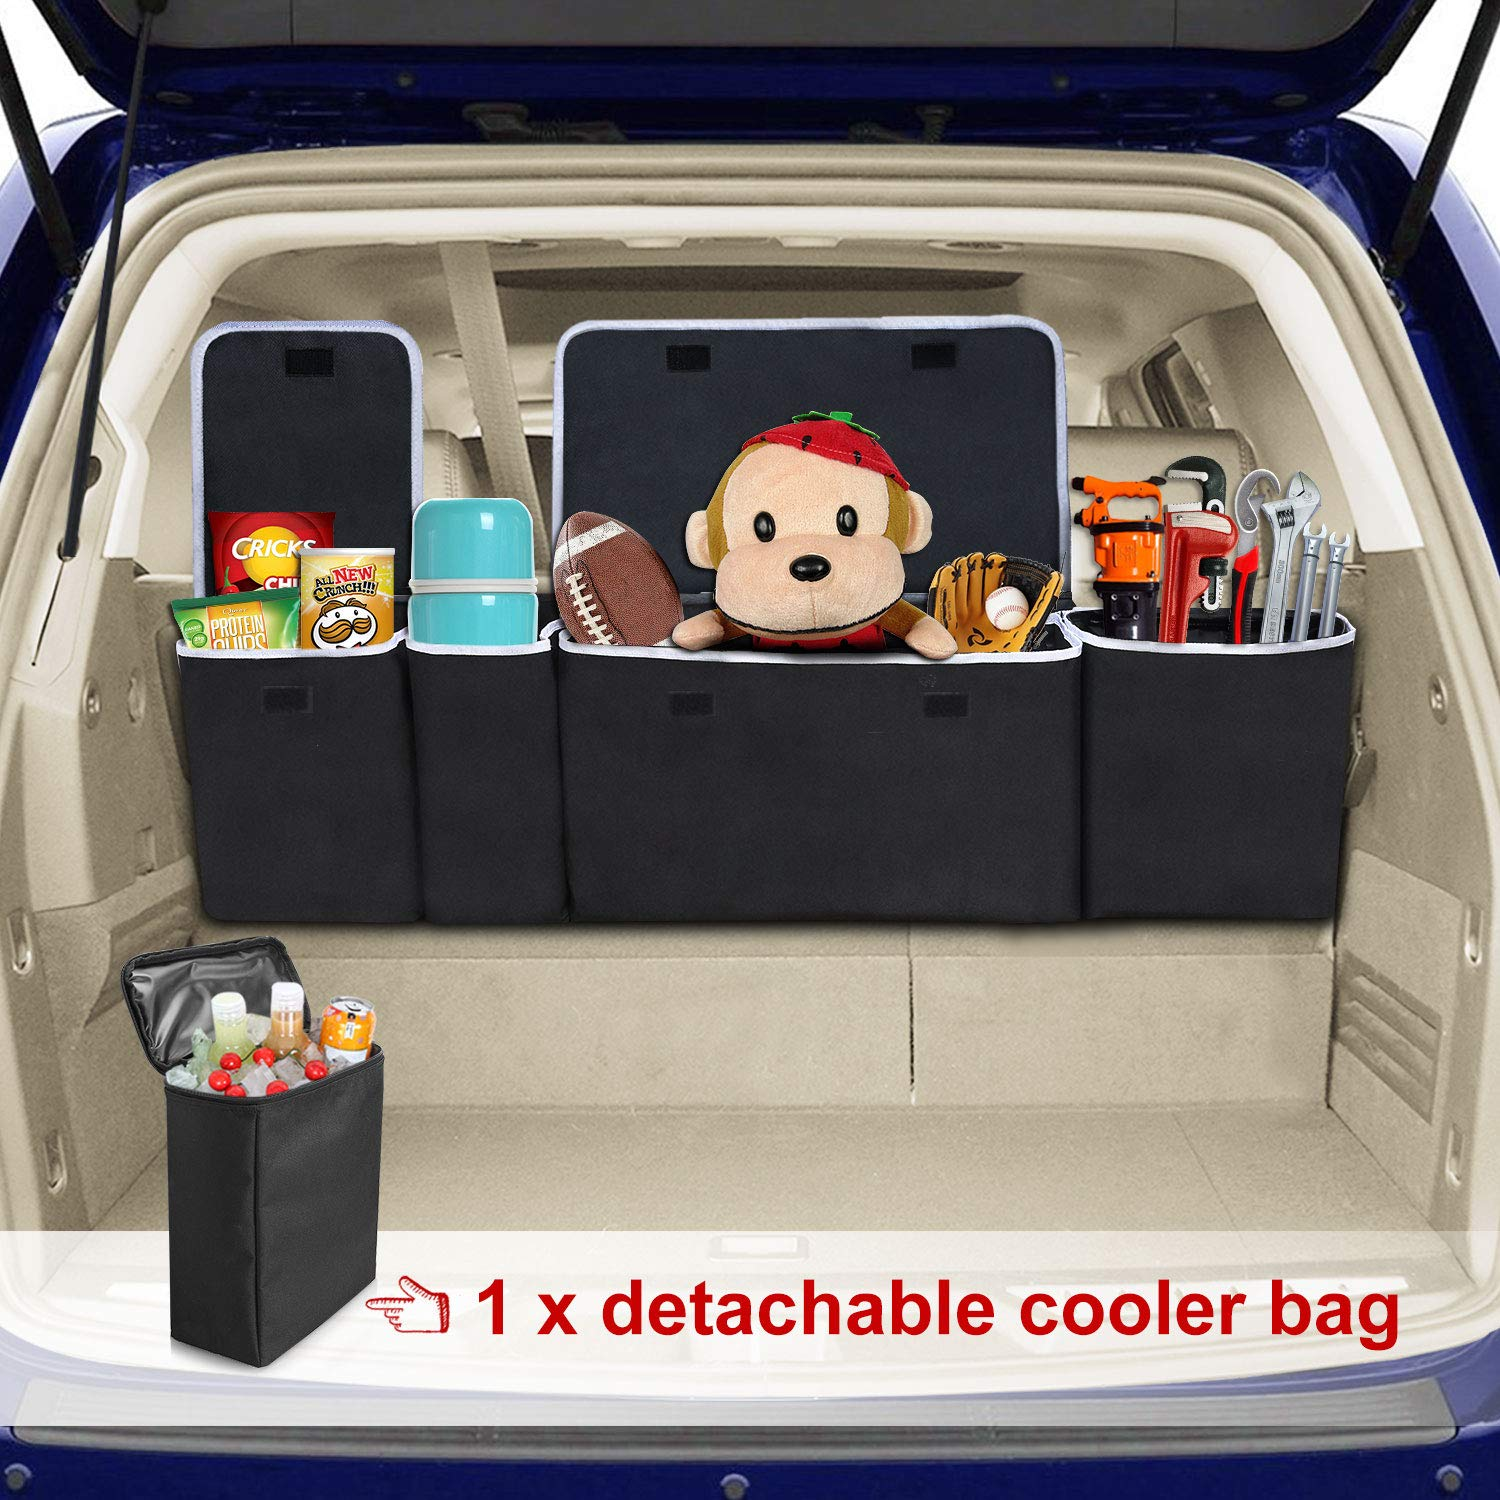 MODOKIT Large Trunk Organizer with Cooler for Car SUV Van Auto, Trunk Storage Container Durable Lids, Adjustable Straps and Large Pockets Accessories by MODOKIT